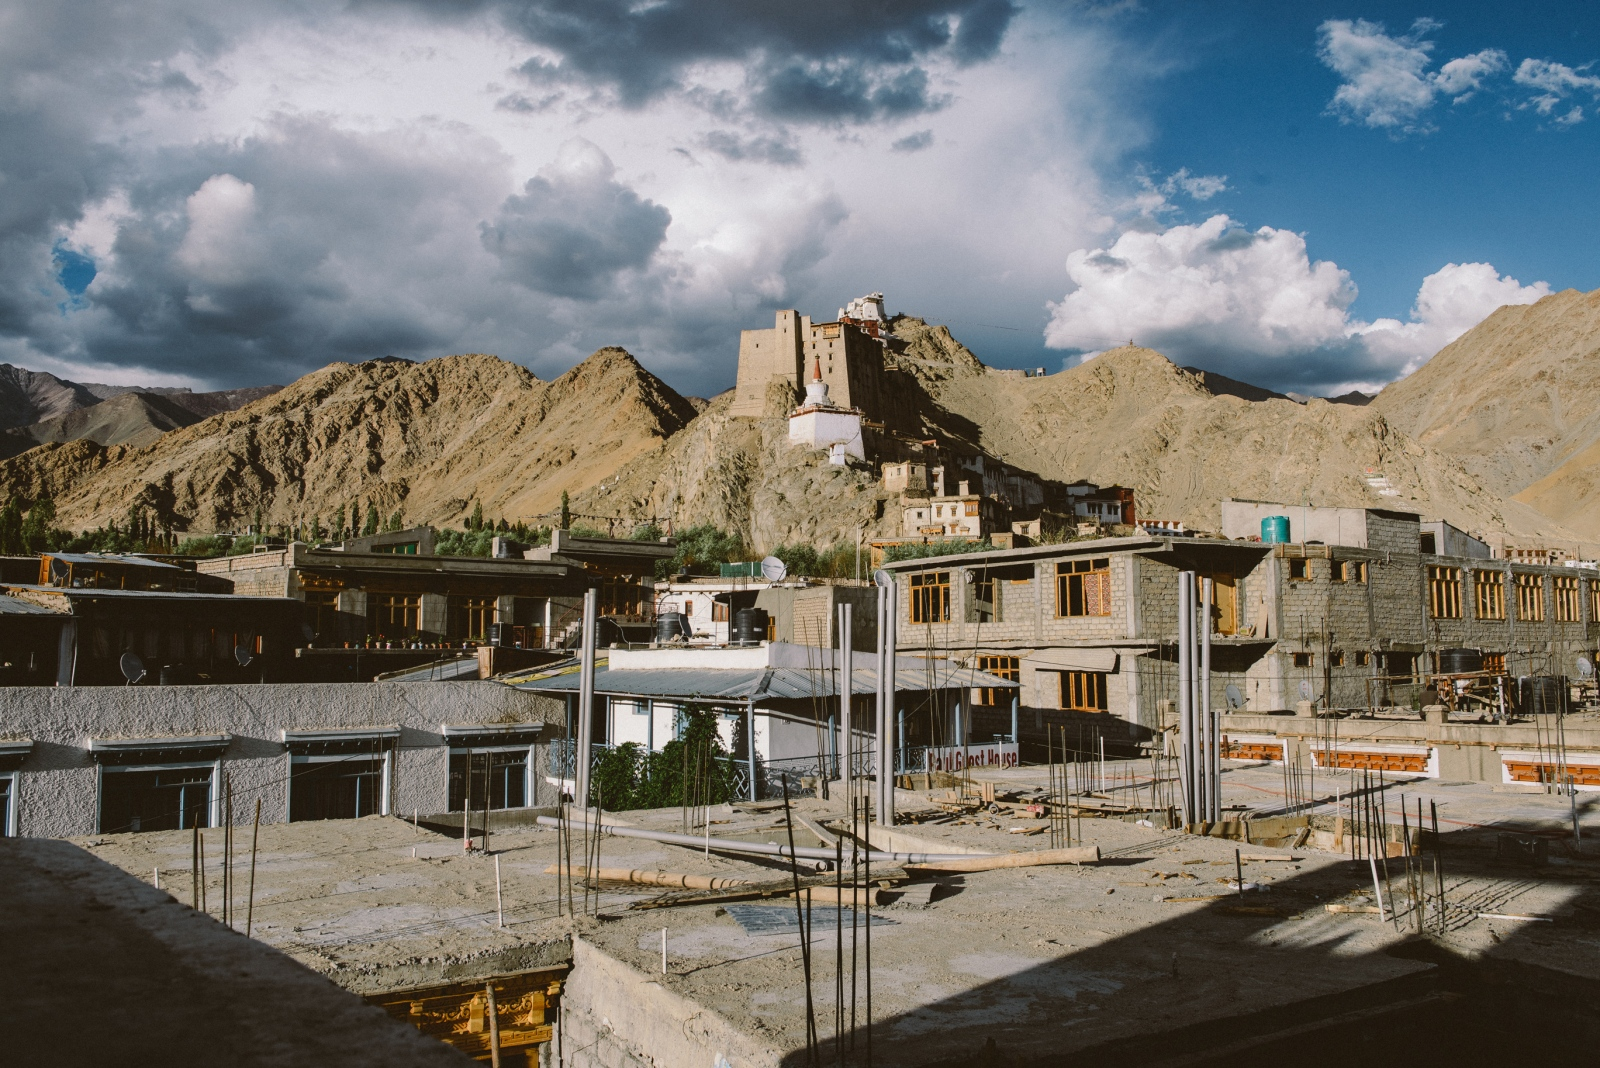 New development, accomodation and hotel construction sites surround the ancient Leh Palace, a site of historical significance for the Ladakhi people and the Buddhist community. The tourism industry in the state of Jammu & Kashmir, has increased exponentially since 1974, especially in the region of Ladakh, bringing urban development projects and modern technology, but also having an inverse affect on the local environment, such as putting a high demand on electricity, and negatively affecting the amount of clean drinking water due to Western flush toilets.